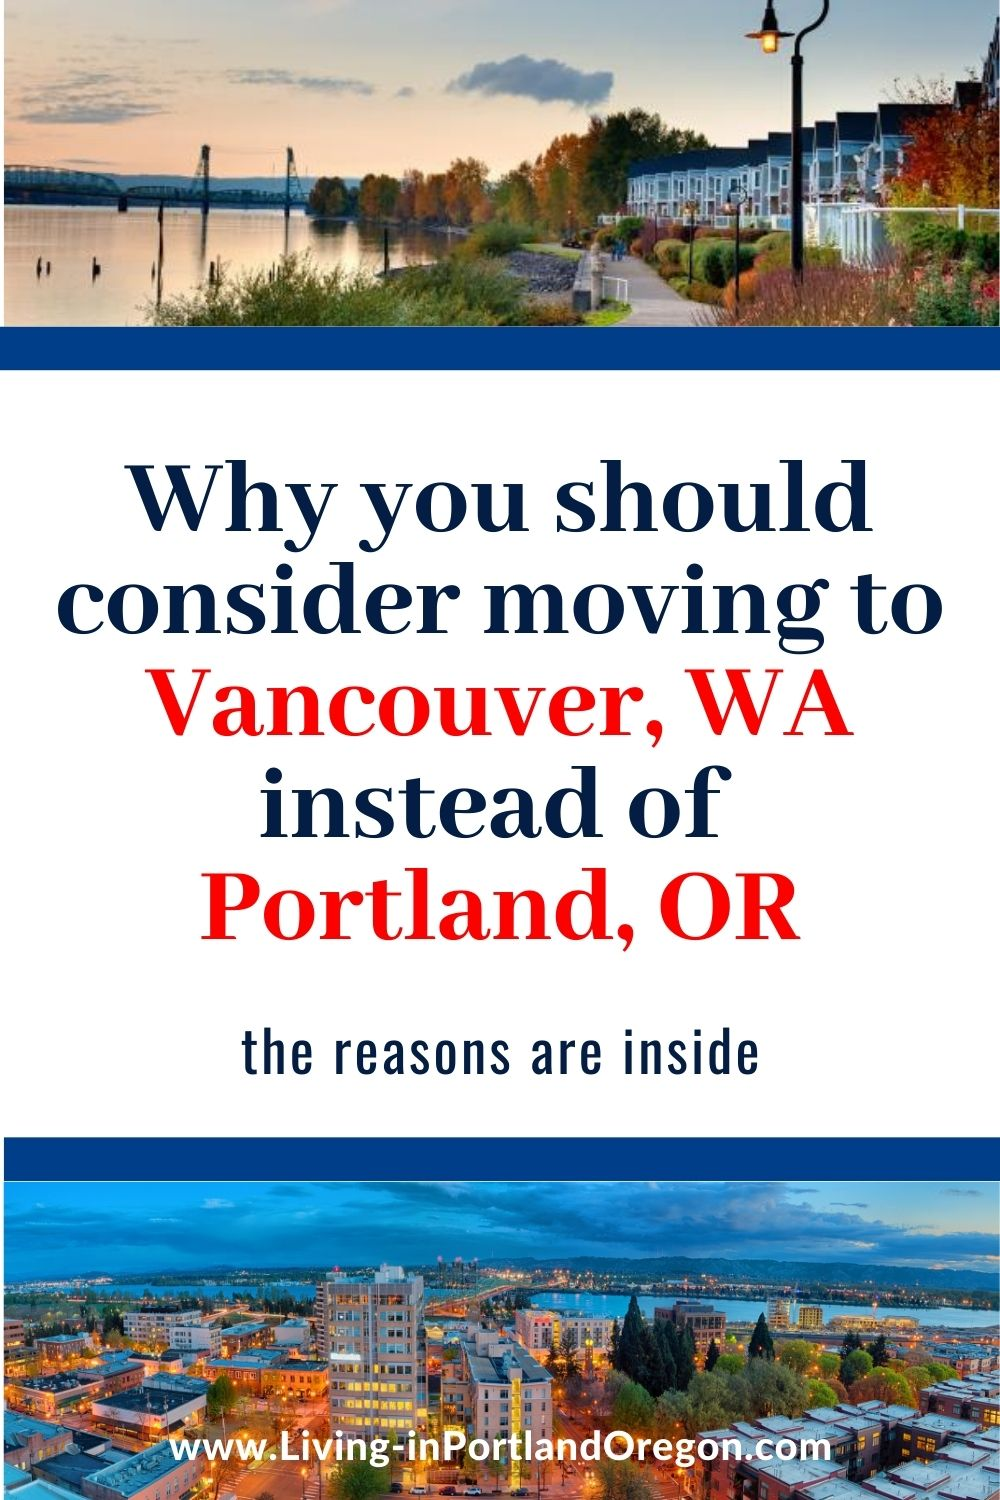 Why People are moving to Vancouver over PDX pins (4)